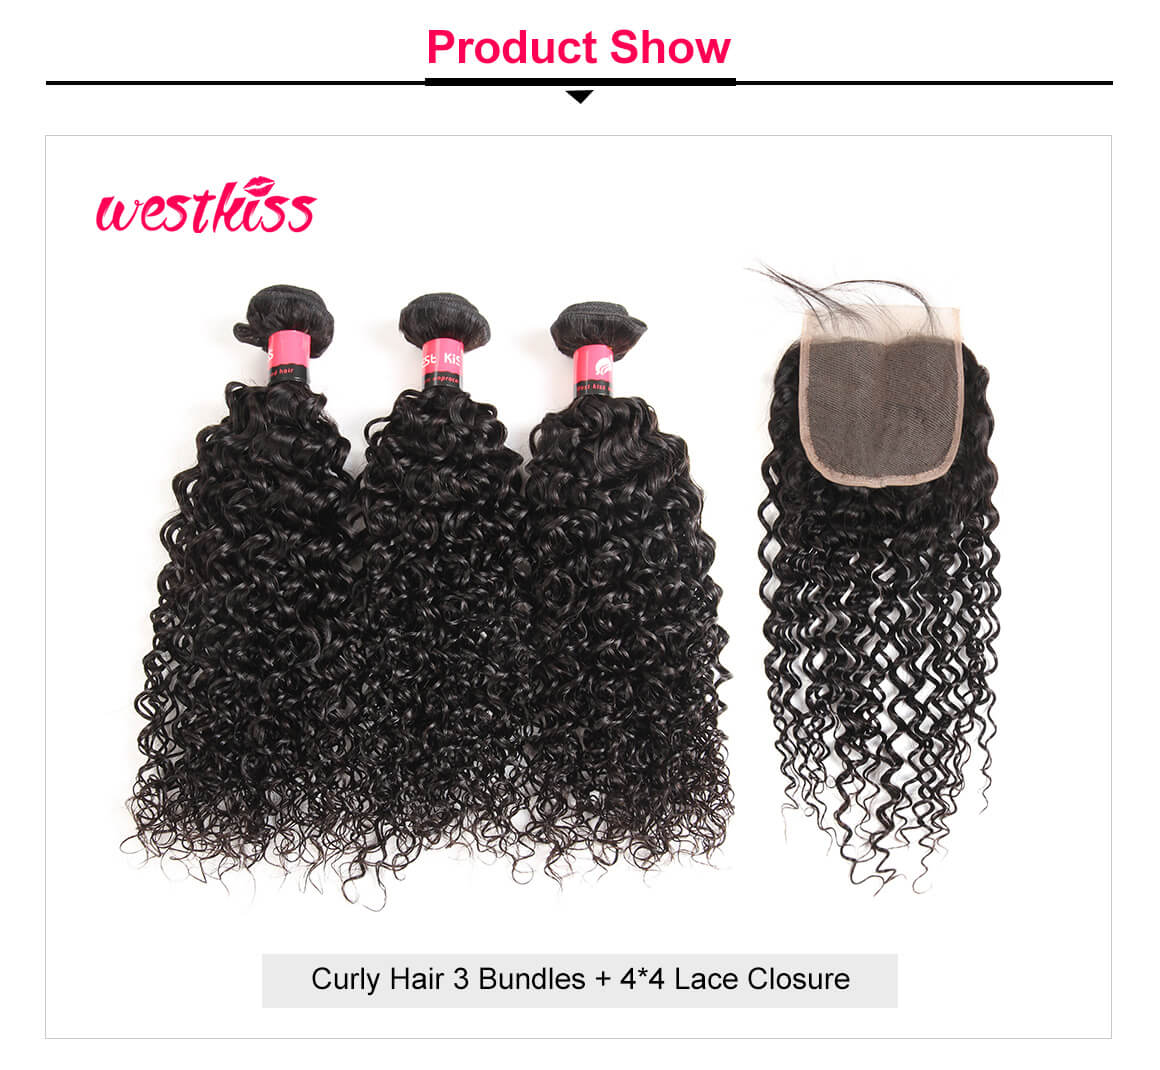 Curly Hair Bundles 3 Bundles